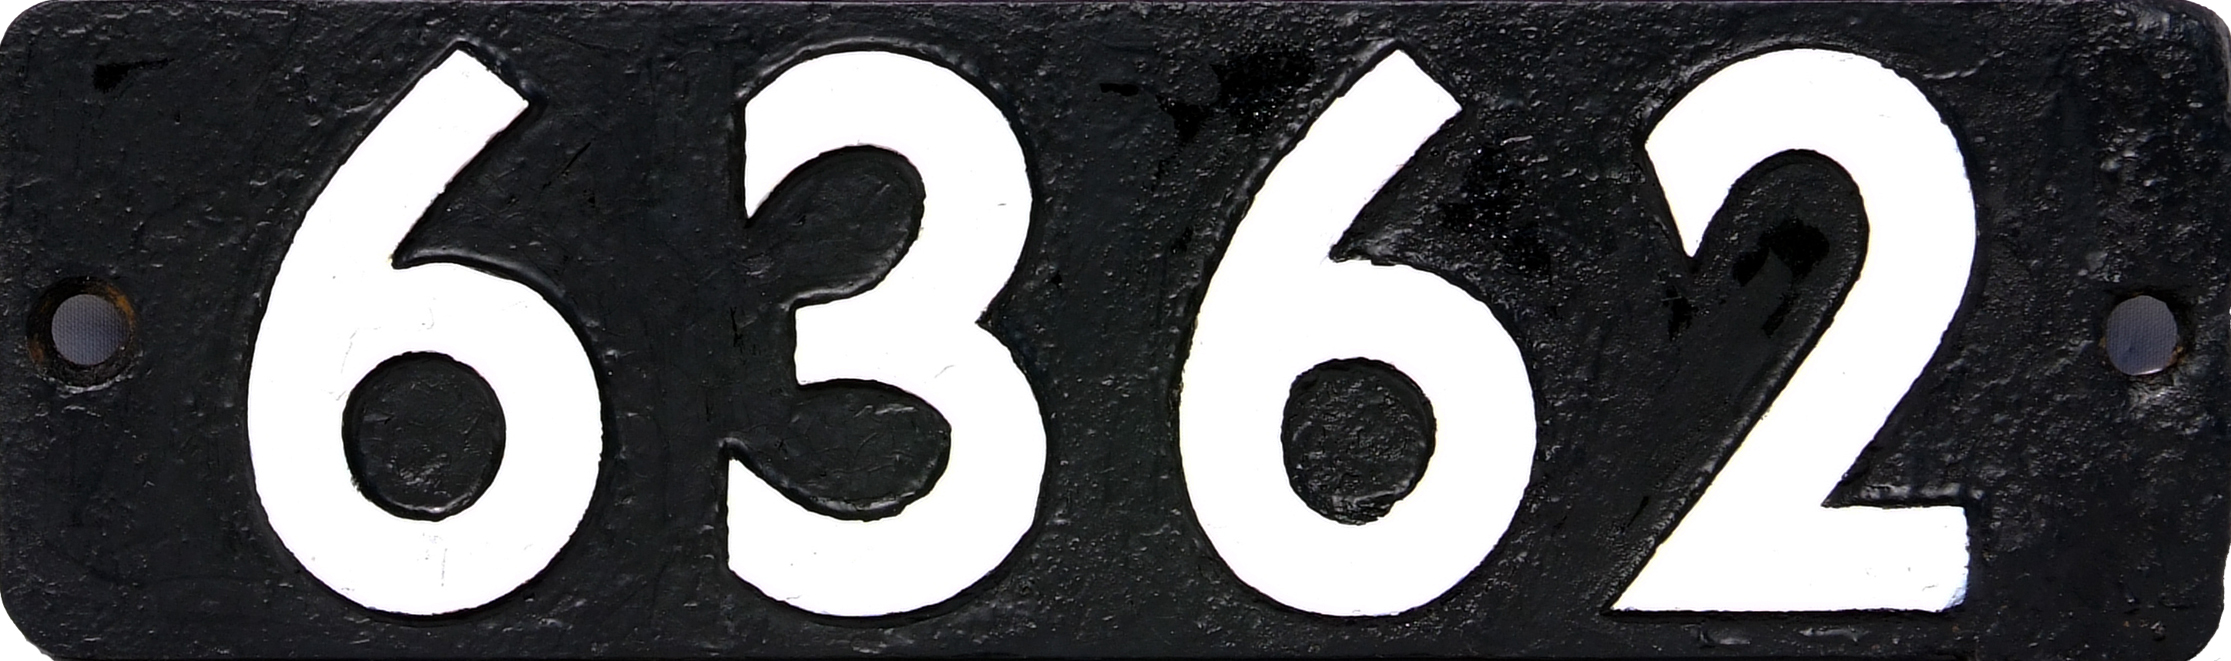 Smokebox Numberplate 6362, Cast Iron Construction.